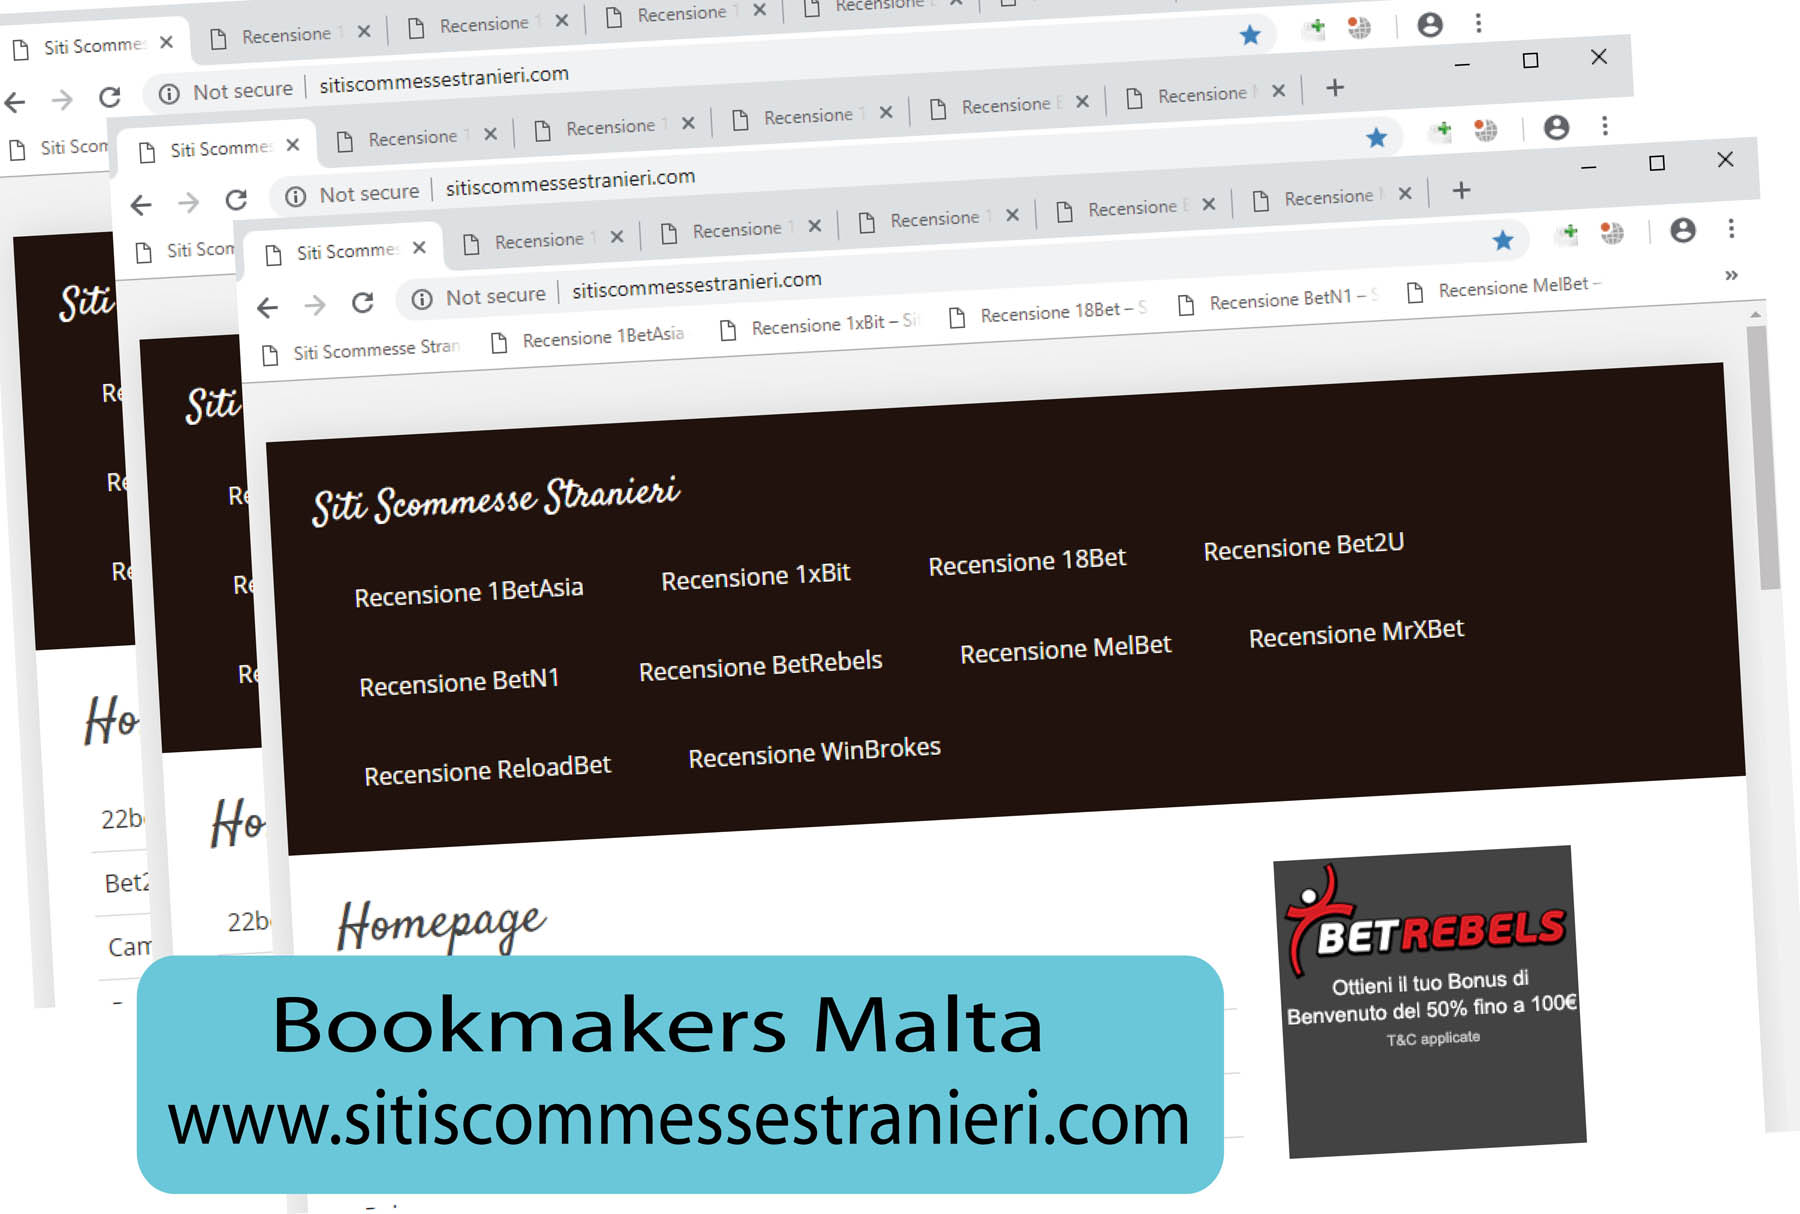 Malta Bookmakers